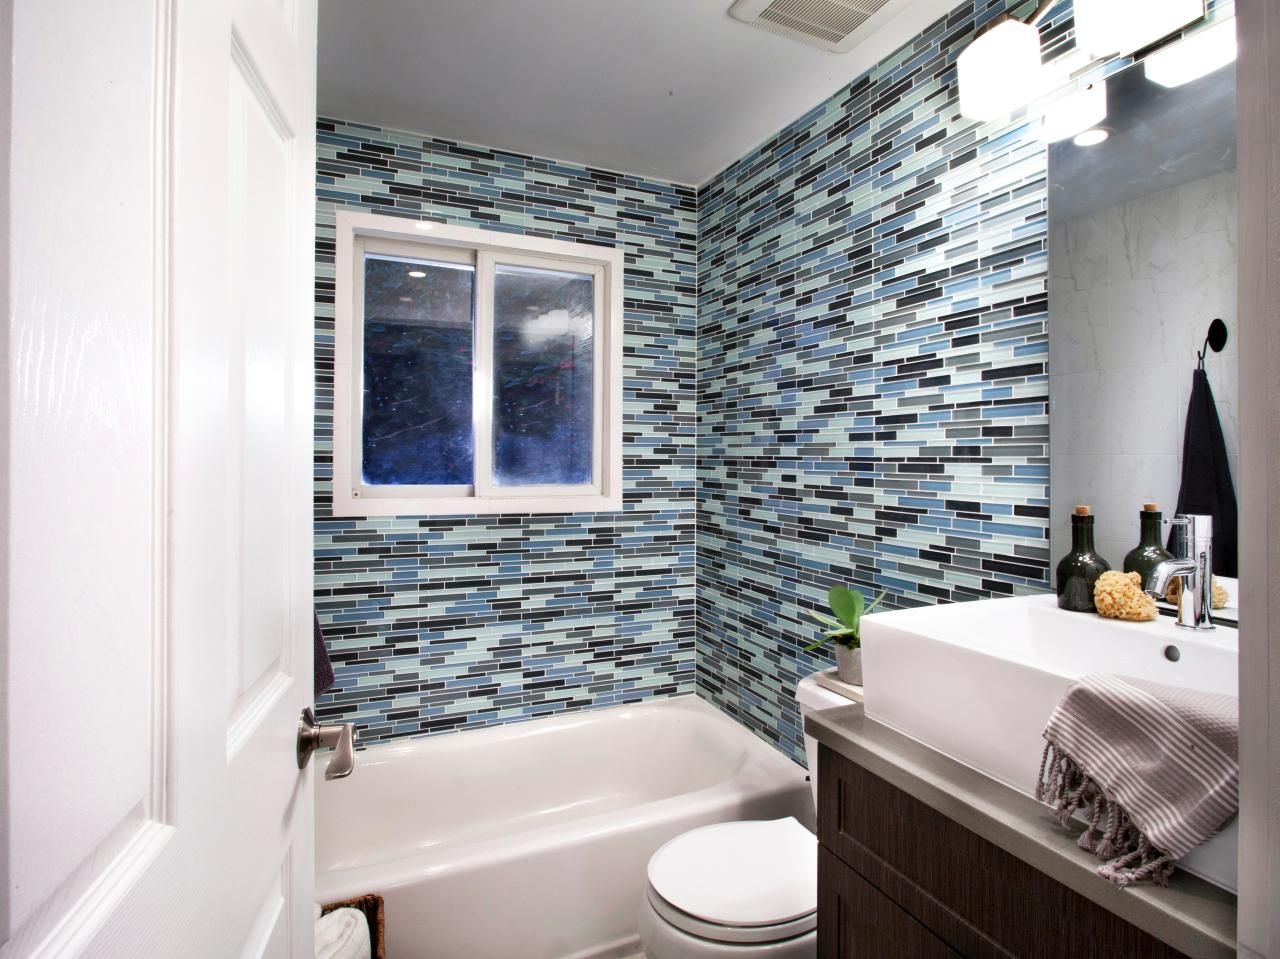 HCOCL112H_Bathroom-Glass-Tiles_After.jpg.rend.hgtvcom.1280.960